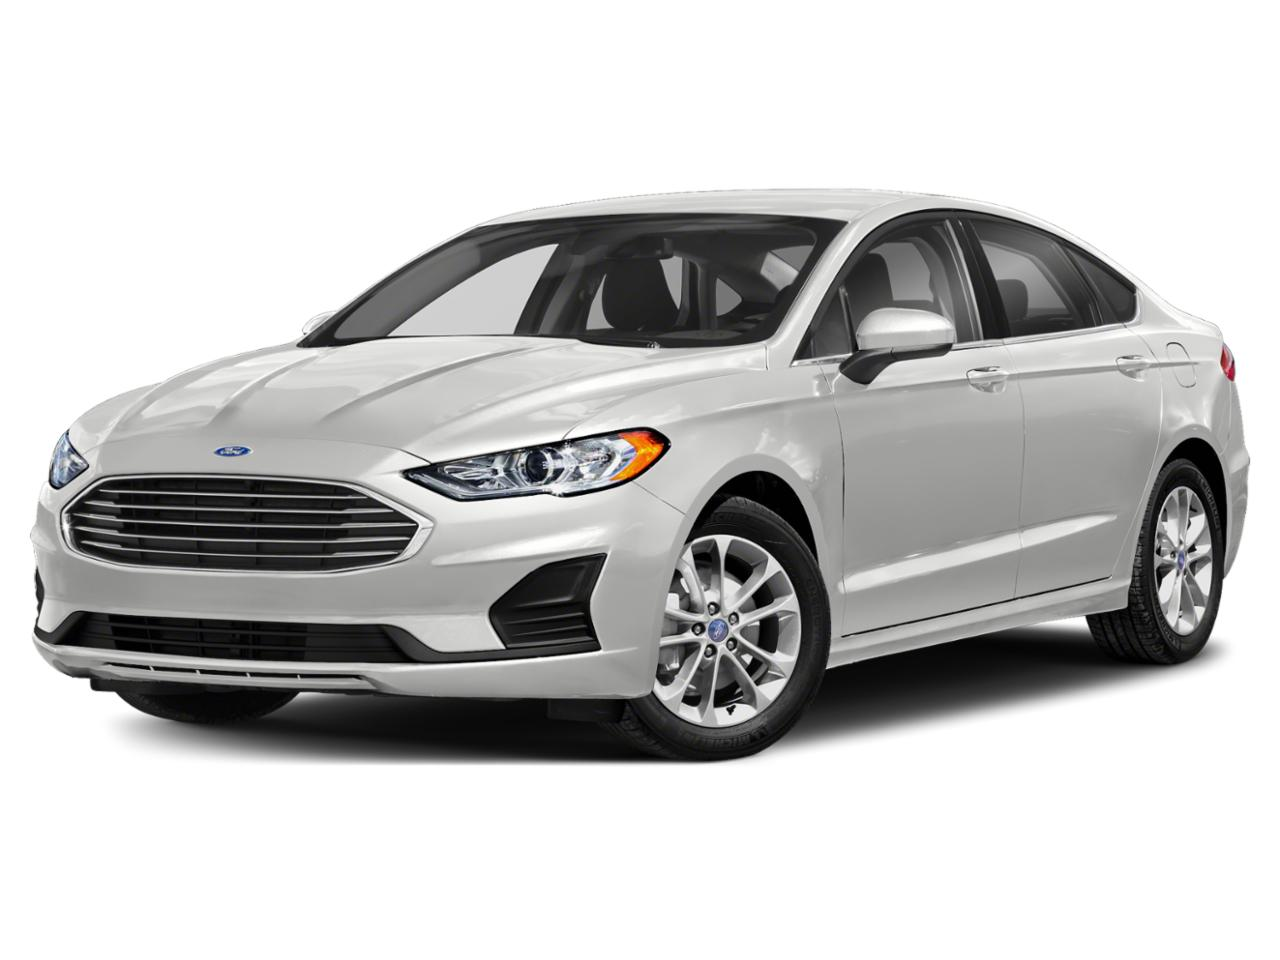 Oxford White 2020 Ford Fusion SE 4dr Car Raleigh NC